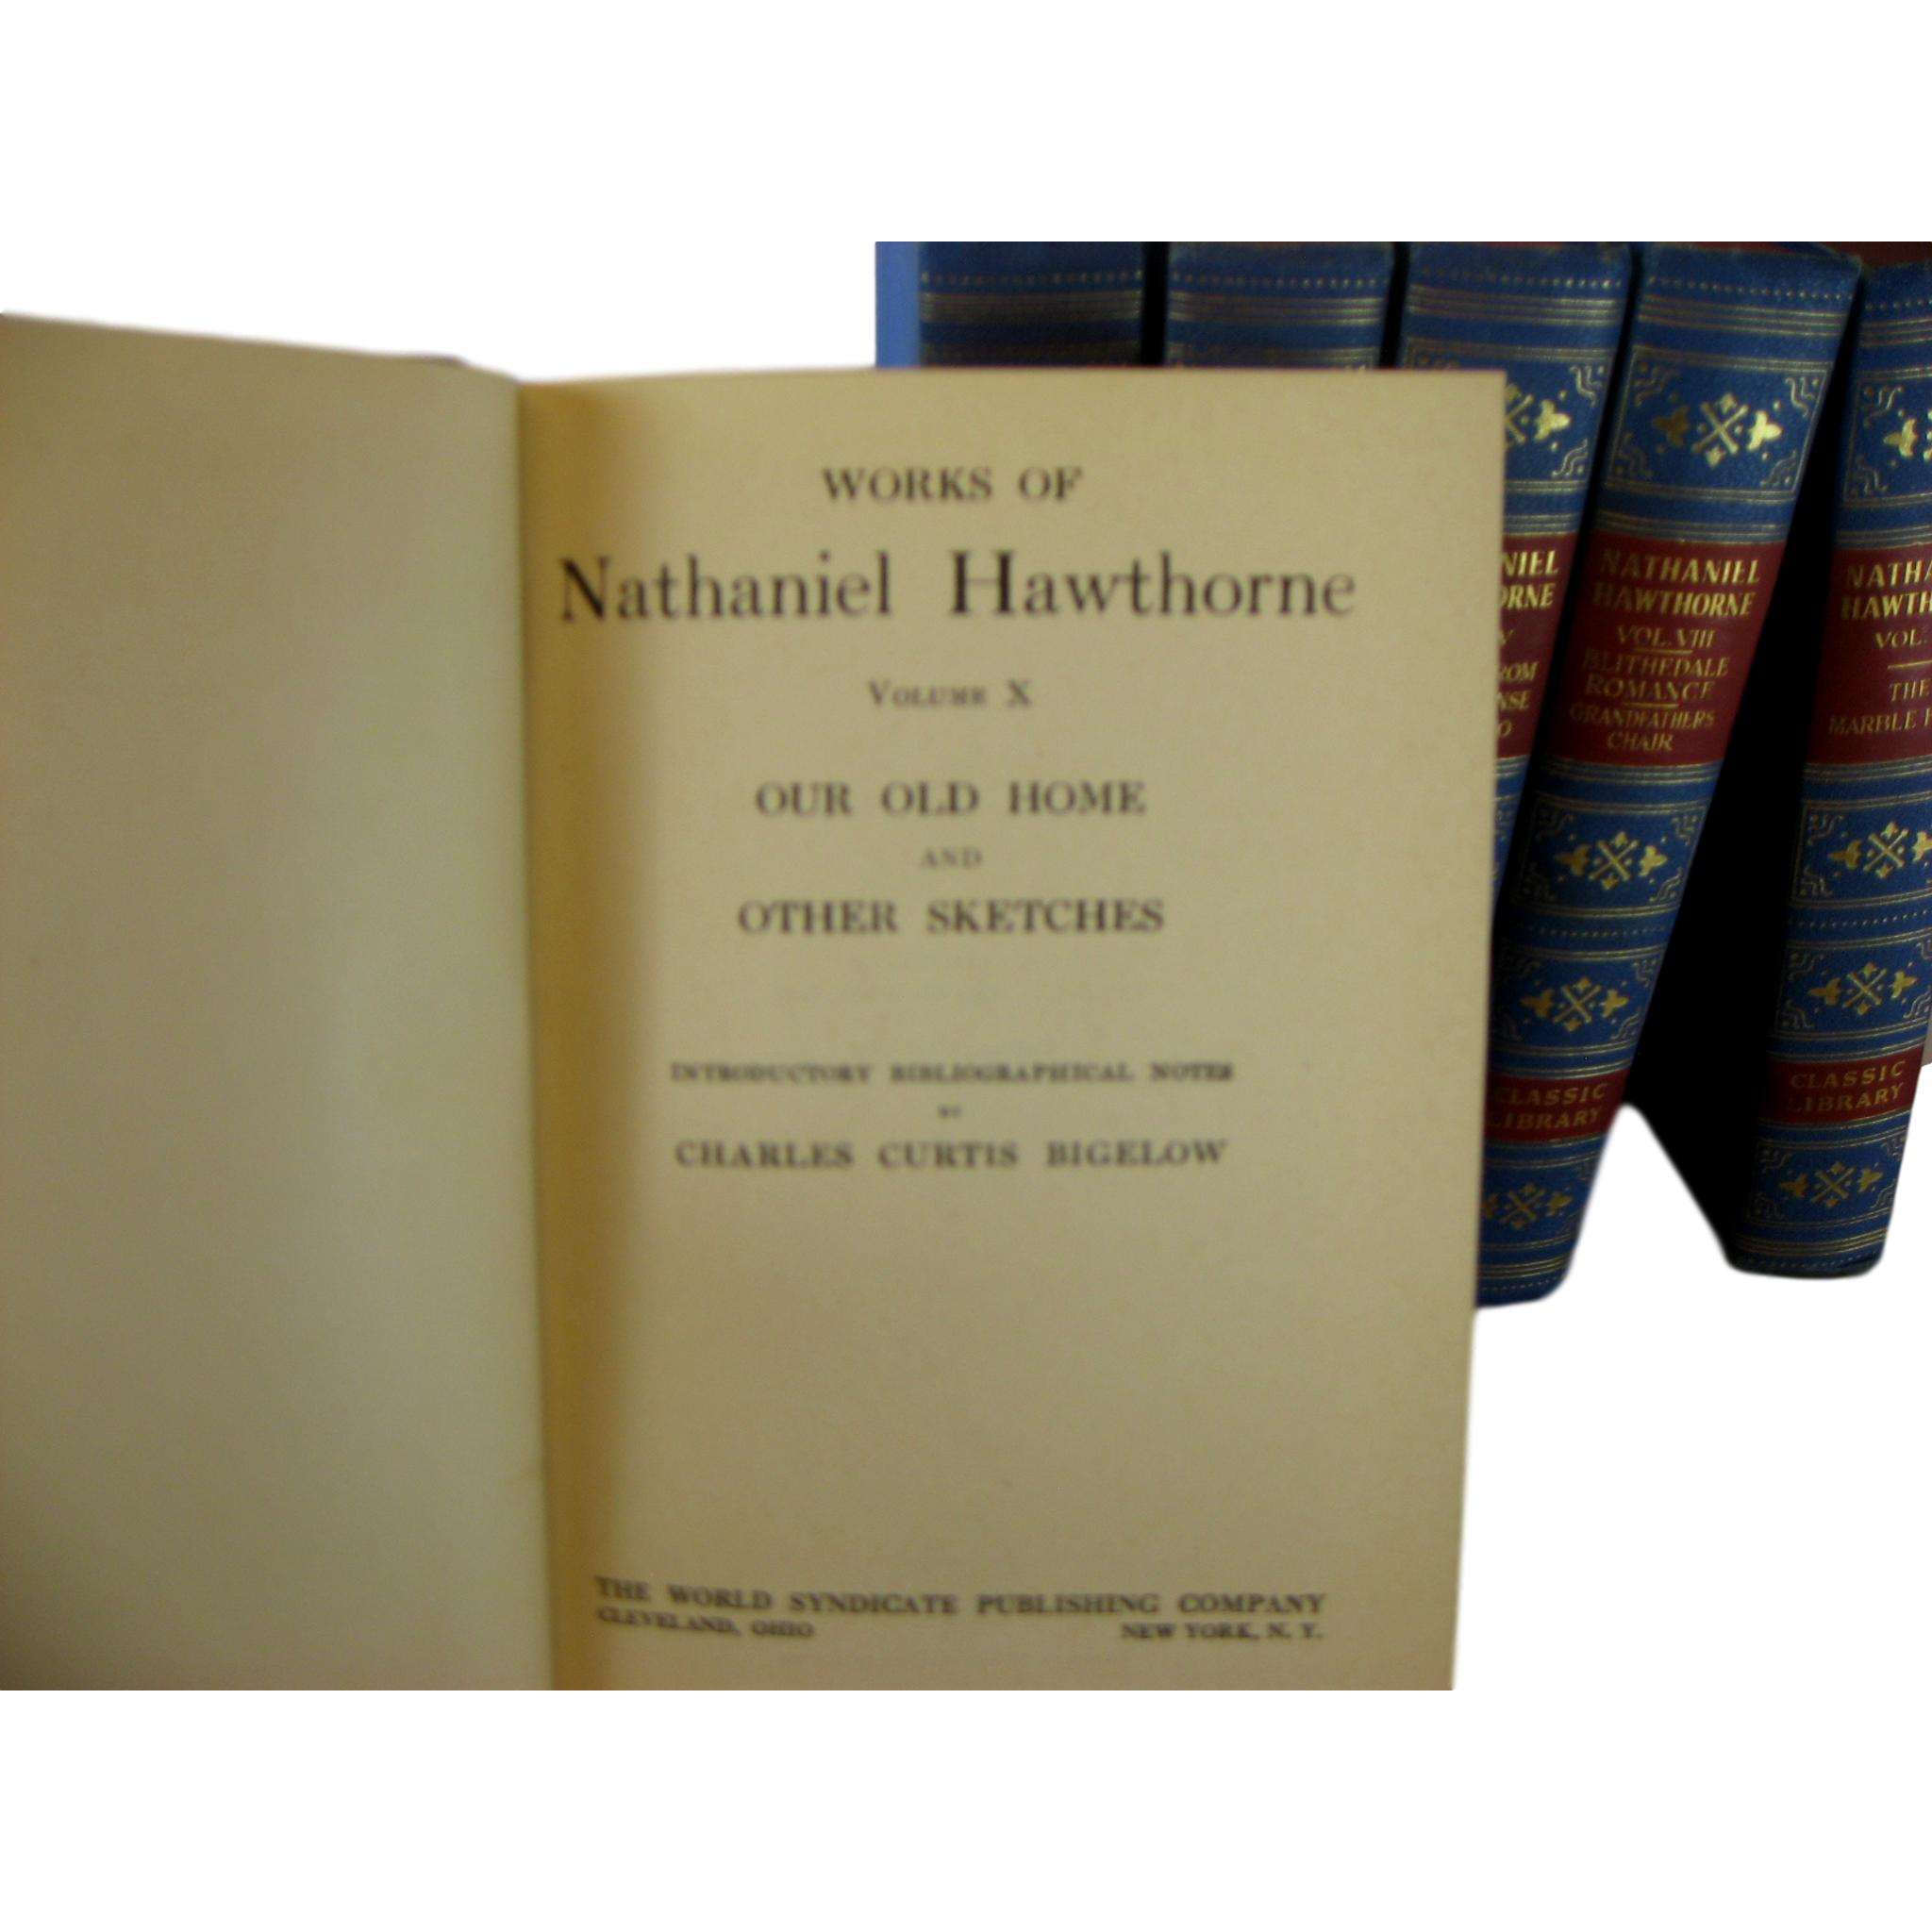 Nathaniel Hawthorne Vintage Decorative Book Set for Interior Design and Decor, S/8 - Decades of Vintage